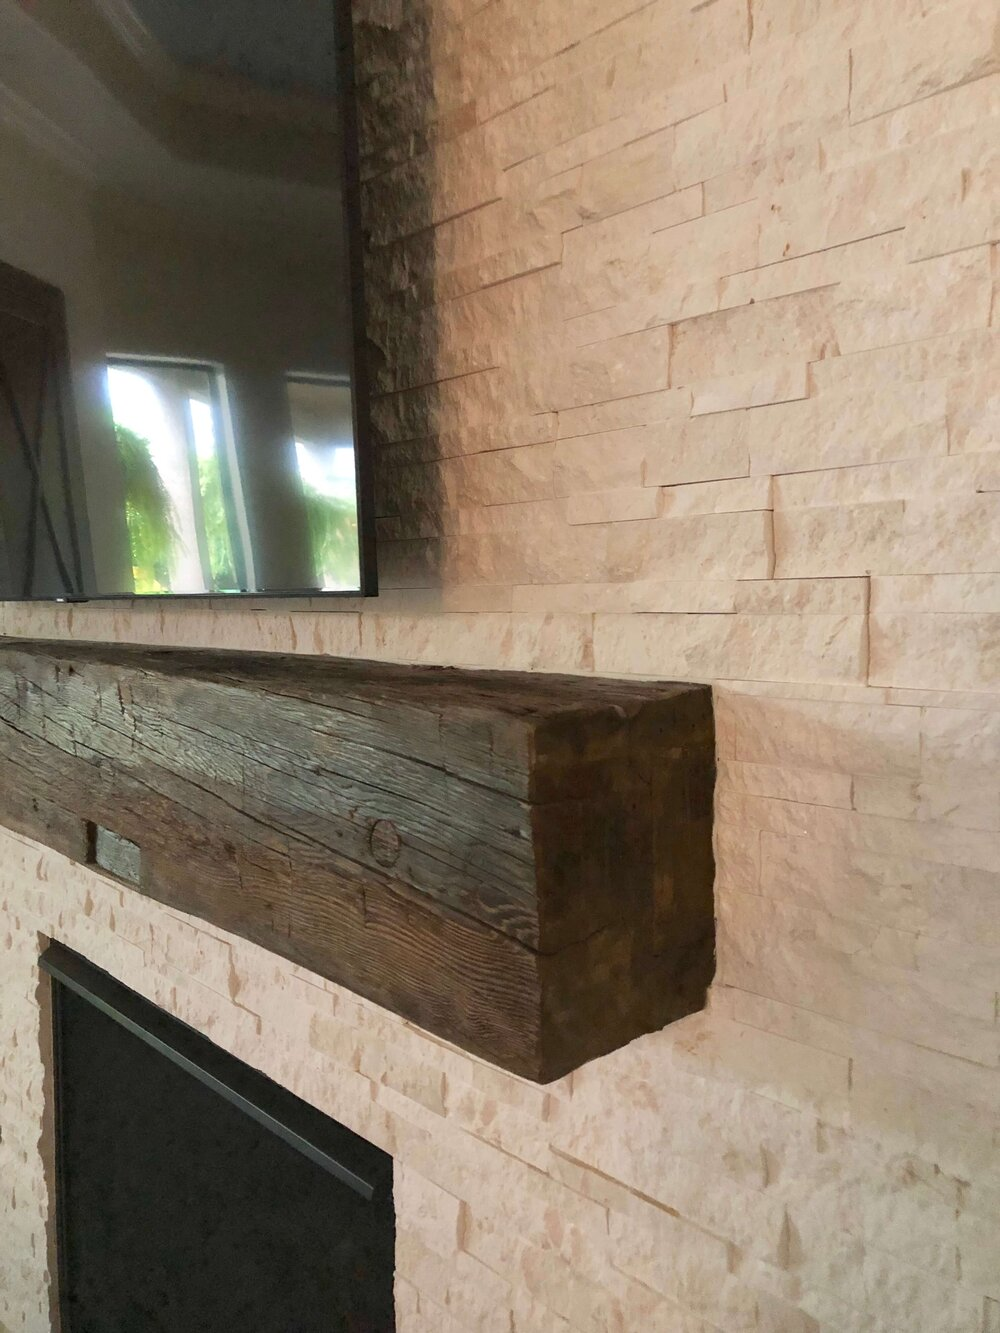 Rustic mantel installed at fireplace wall with light, neutral stacked stone cladding.